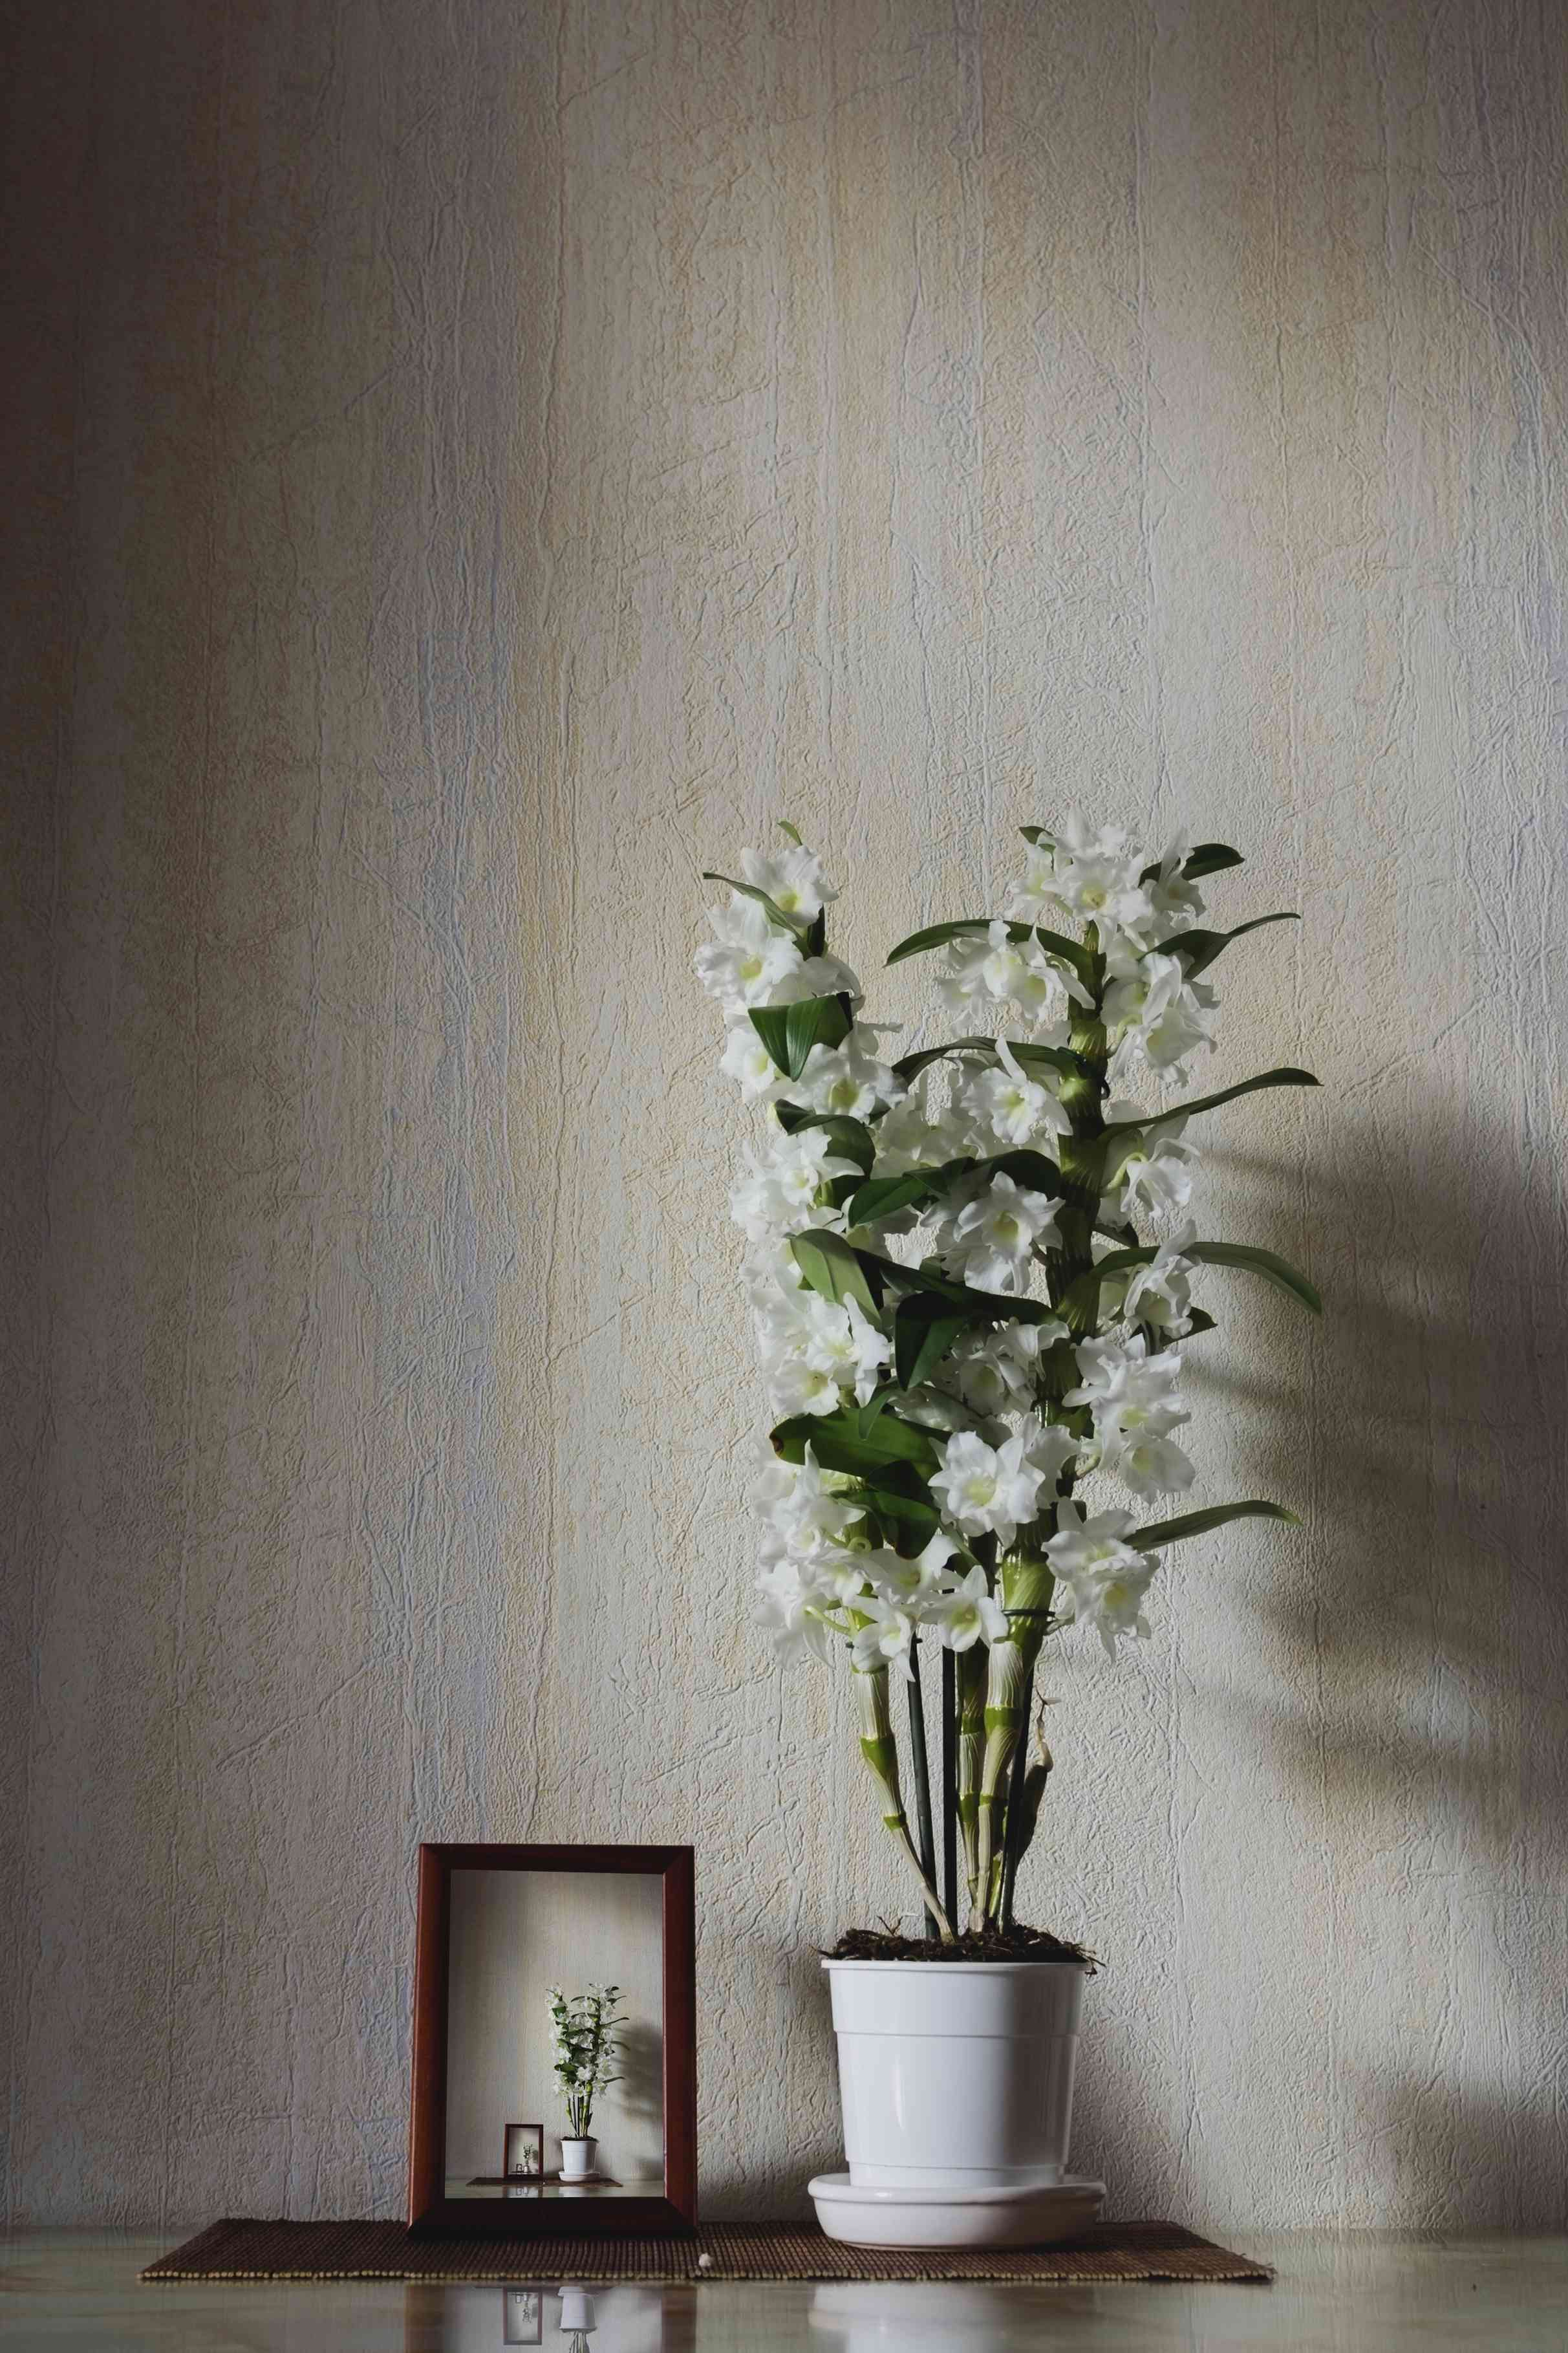 A dendrobium orchid with white flowers in front of beige wall